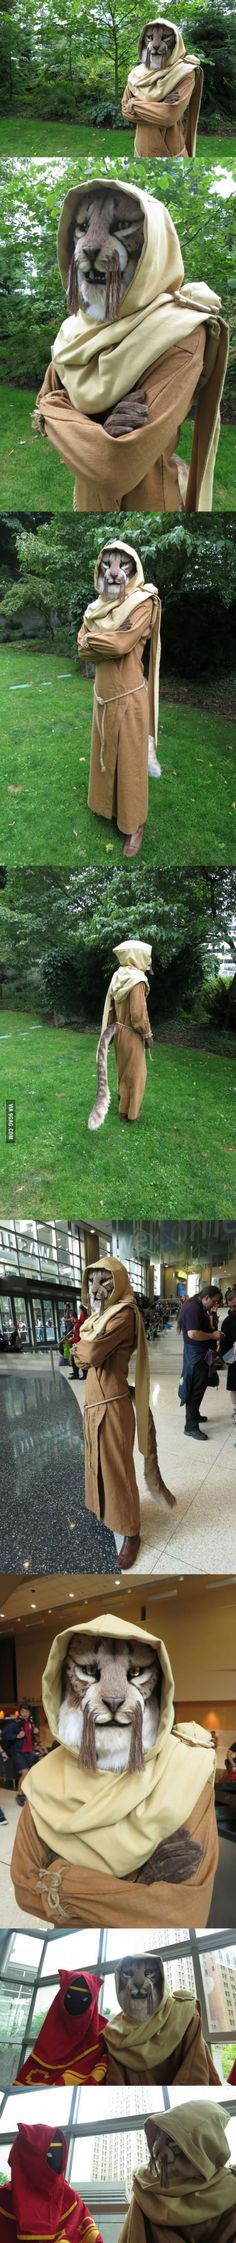 Skyrim Khajiit cosplay - M'aiq the Liar.  THIS IS AMAZING.